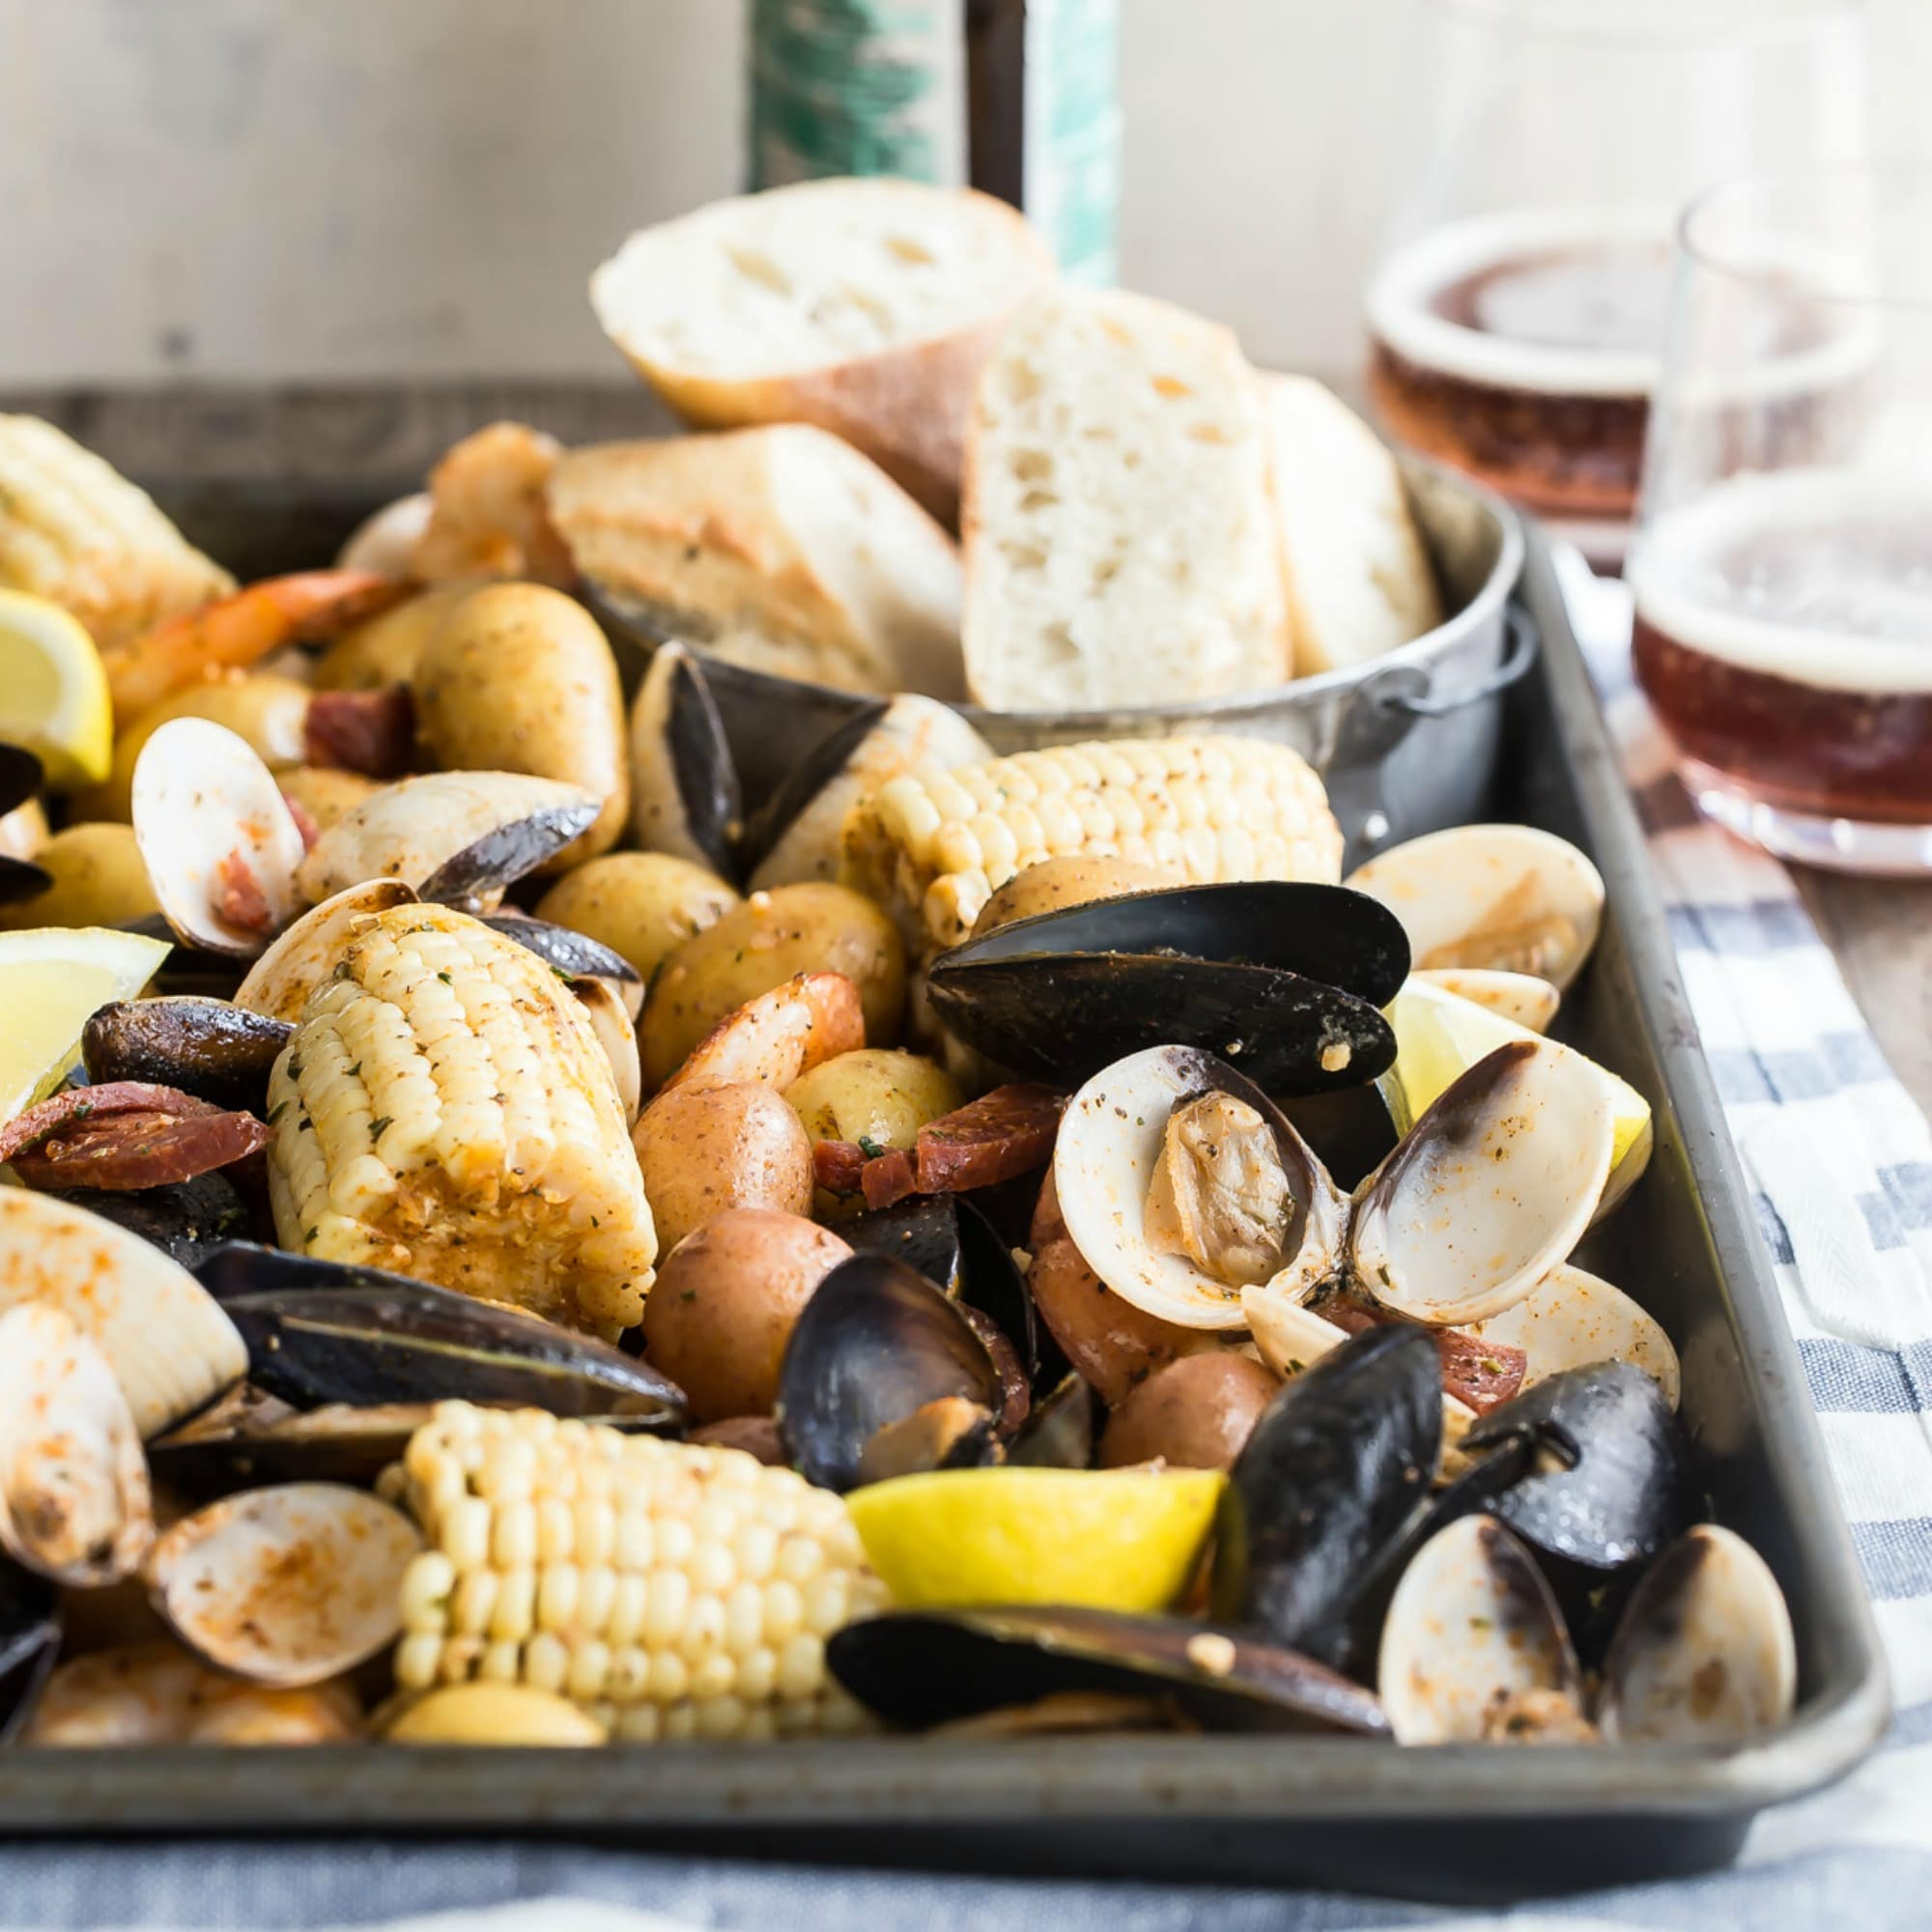 If you can't find your way to a beach this summer, you can make the beach come to you with this sheet pan clam bake, loaded with fresh shrimp, littleneck clams, potatoes, chorizo, and corn. Even better, it all bakes up in one pan for minimal cleanup. Spread a blanket out in the backyard—it's time for a clam bake!